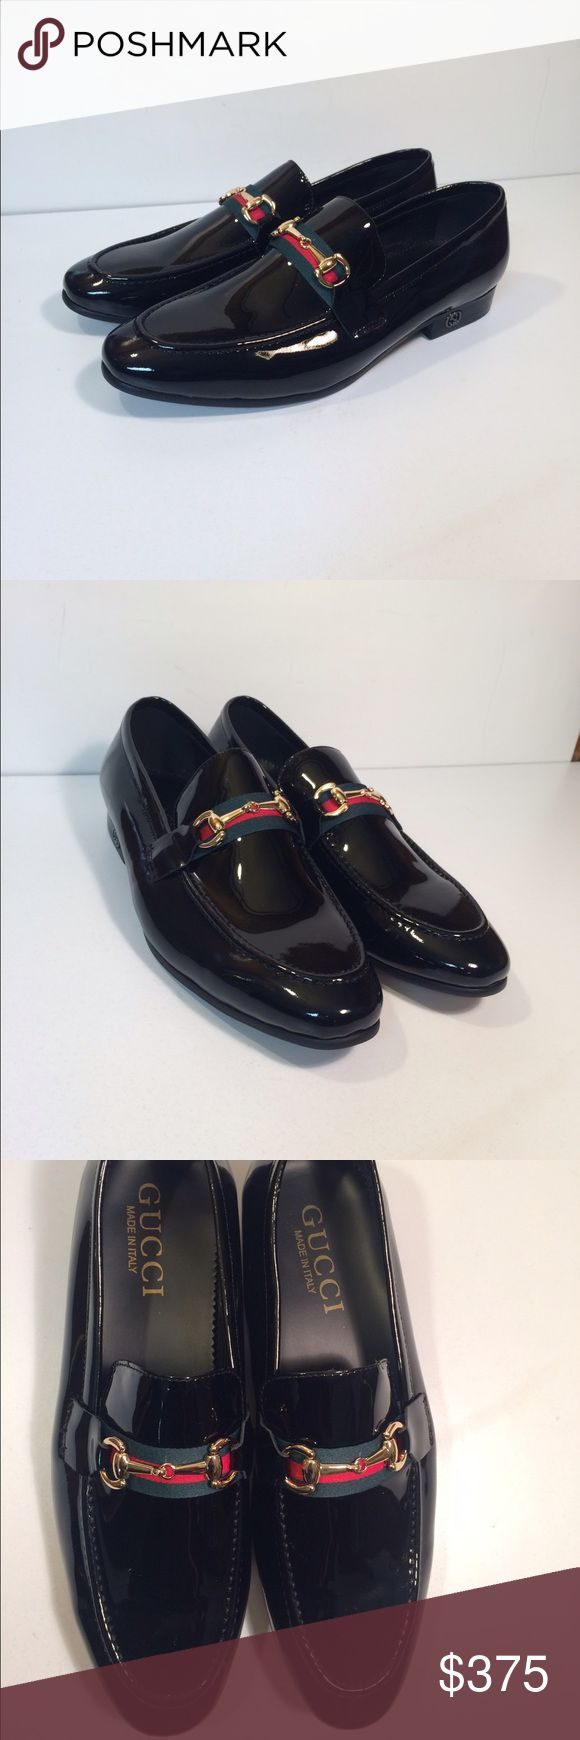 Gucci Men's Slip On Loafers Dress Shoes Gucci Men's Slip On Loafers Dress Shoes ... Size: EU 44 / US: 10.5 ... Color: Black ... Material: Patent Leather ... Condition: New Without Box / Tags. Gucci Shoes Loafers & Slip-Ons